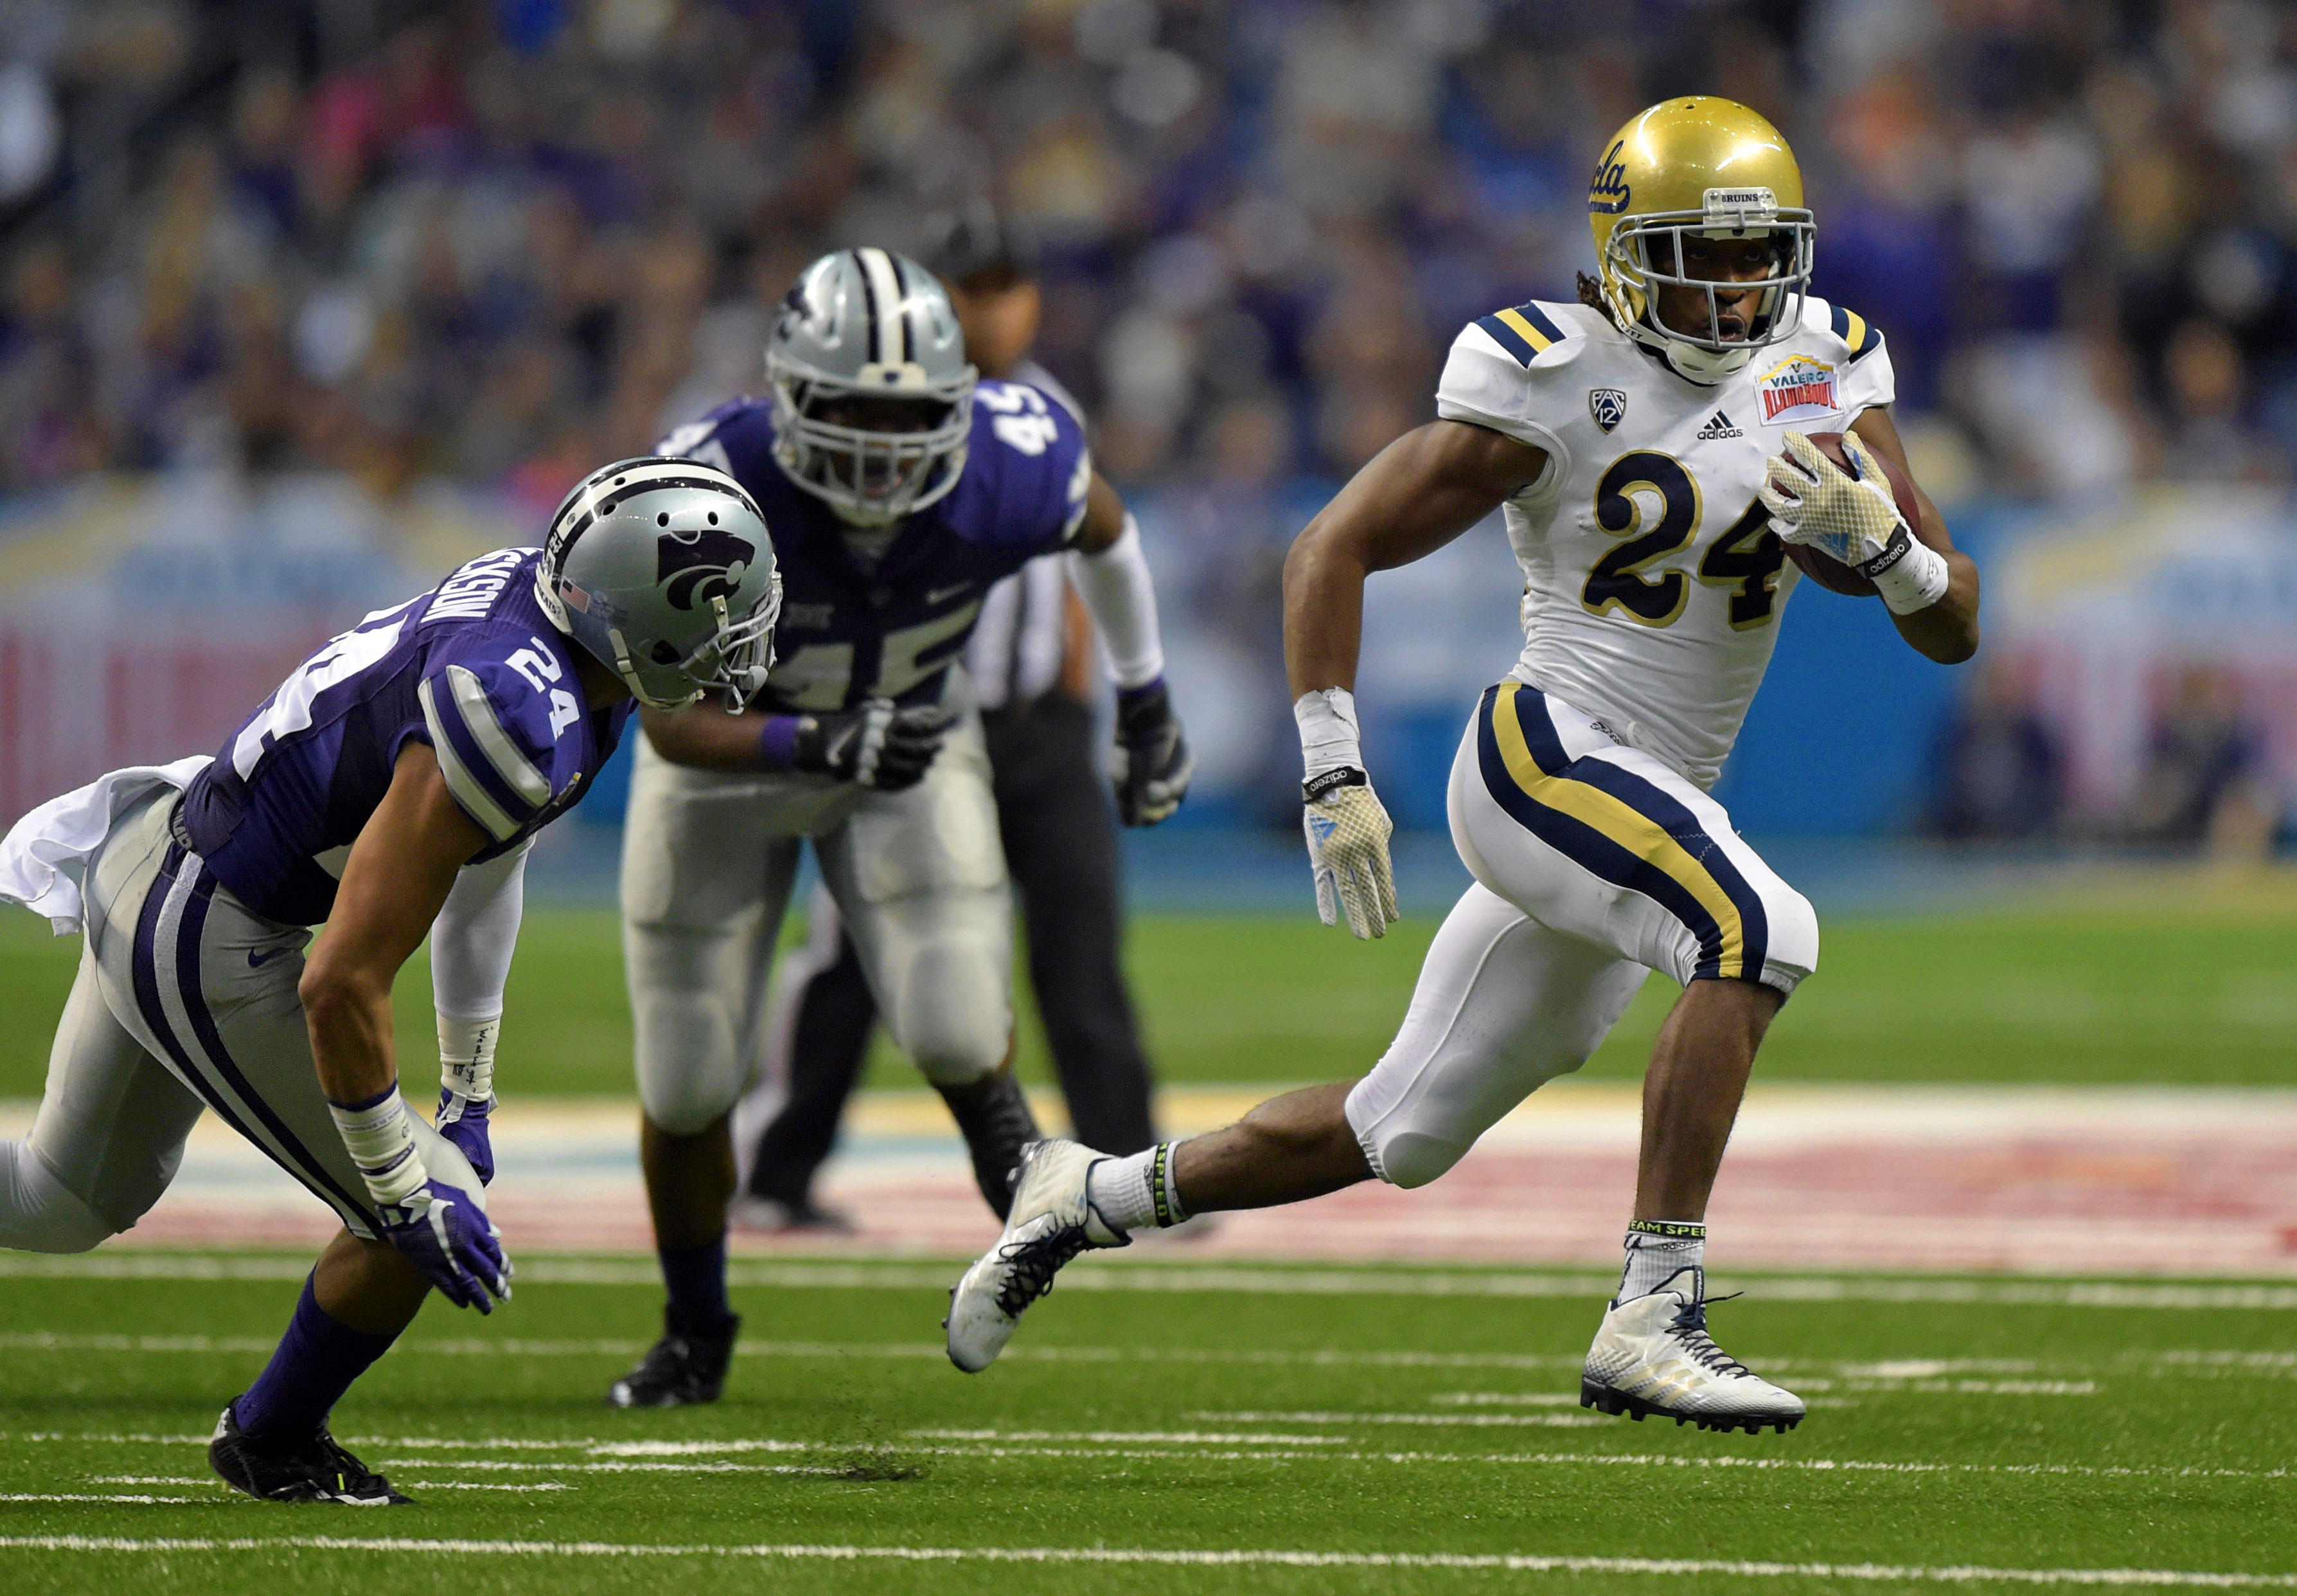 After serving as K-State's primary reserve cornerback in 2014, Nate Jackson is working toward bigger things following his start against UCLA in the Alamo Bowl.